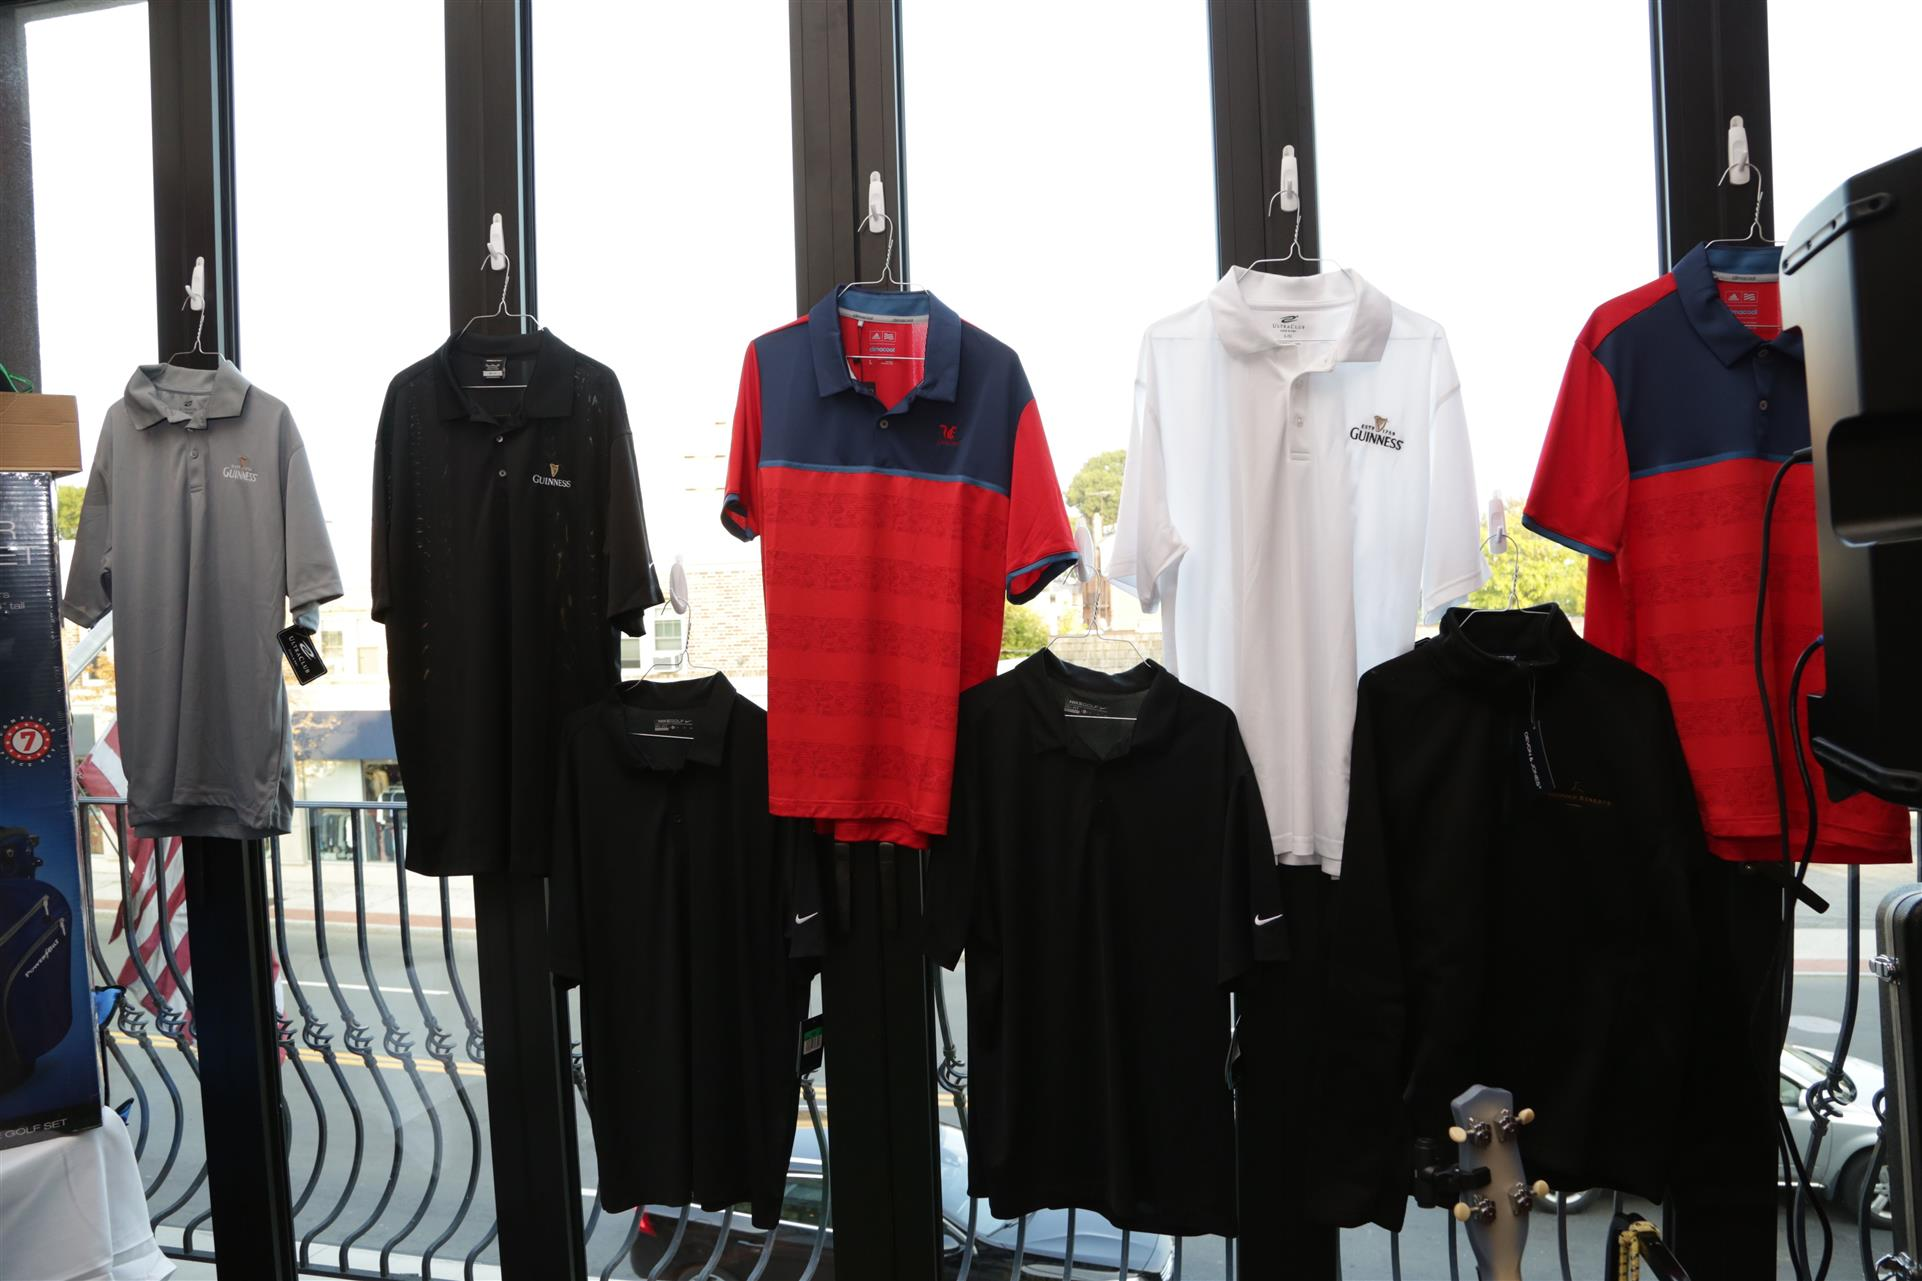 a variety of t shirts hanging up